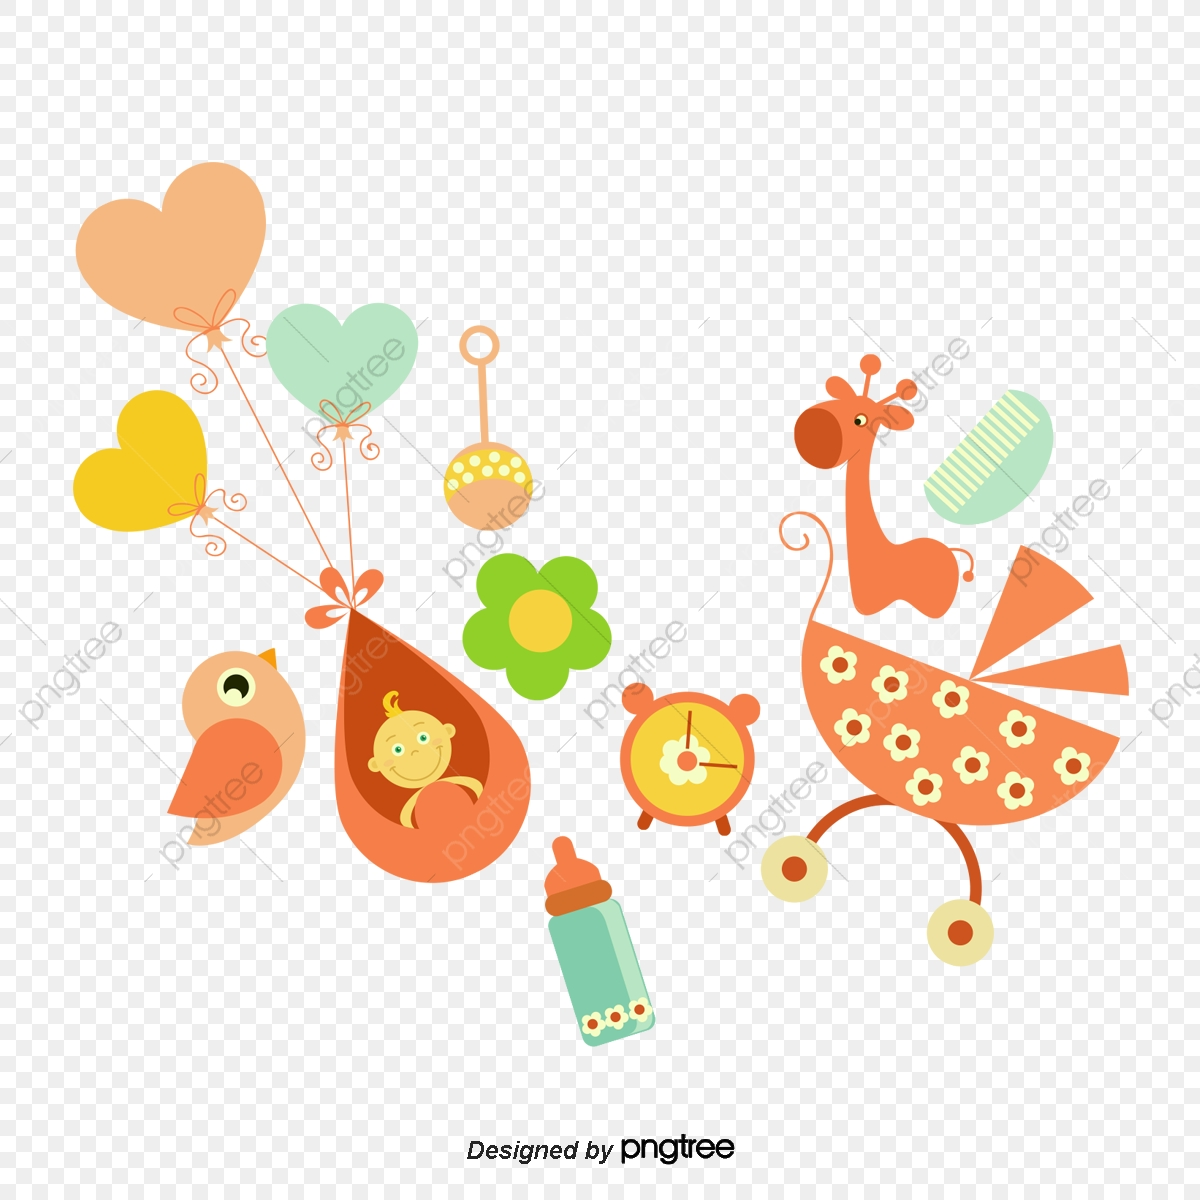 Orange Cartoon Baby Shower Decoration Birth Feeding Bottle Baby Png Transparent Clipart Image And Psd File For Free Download